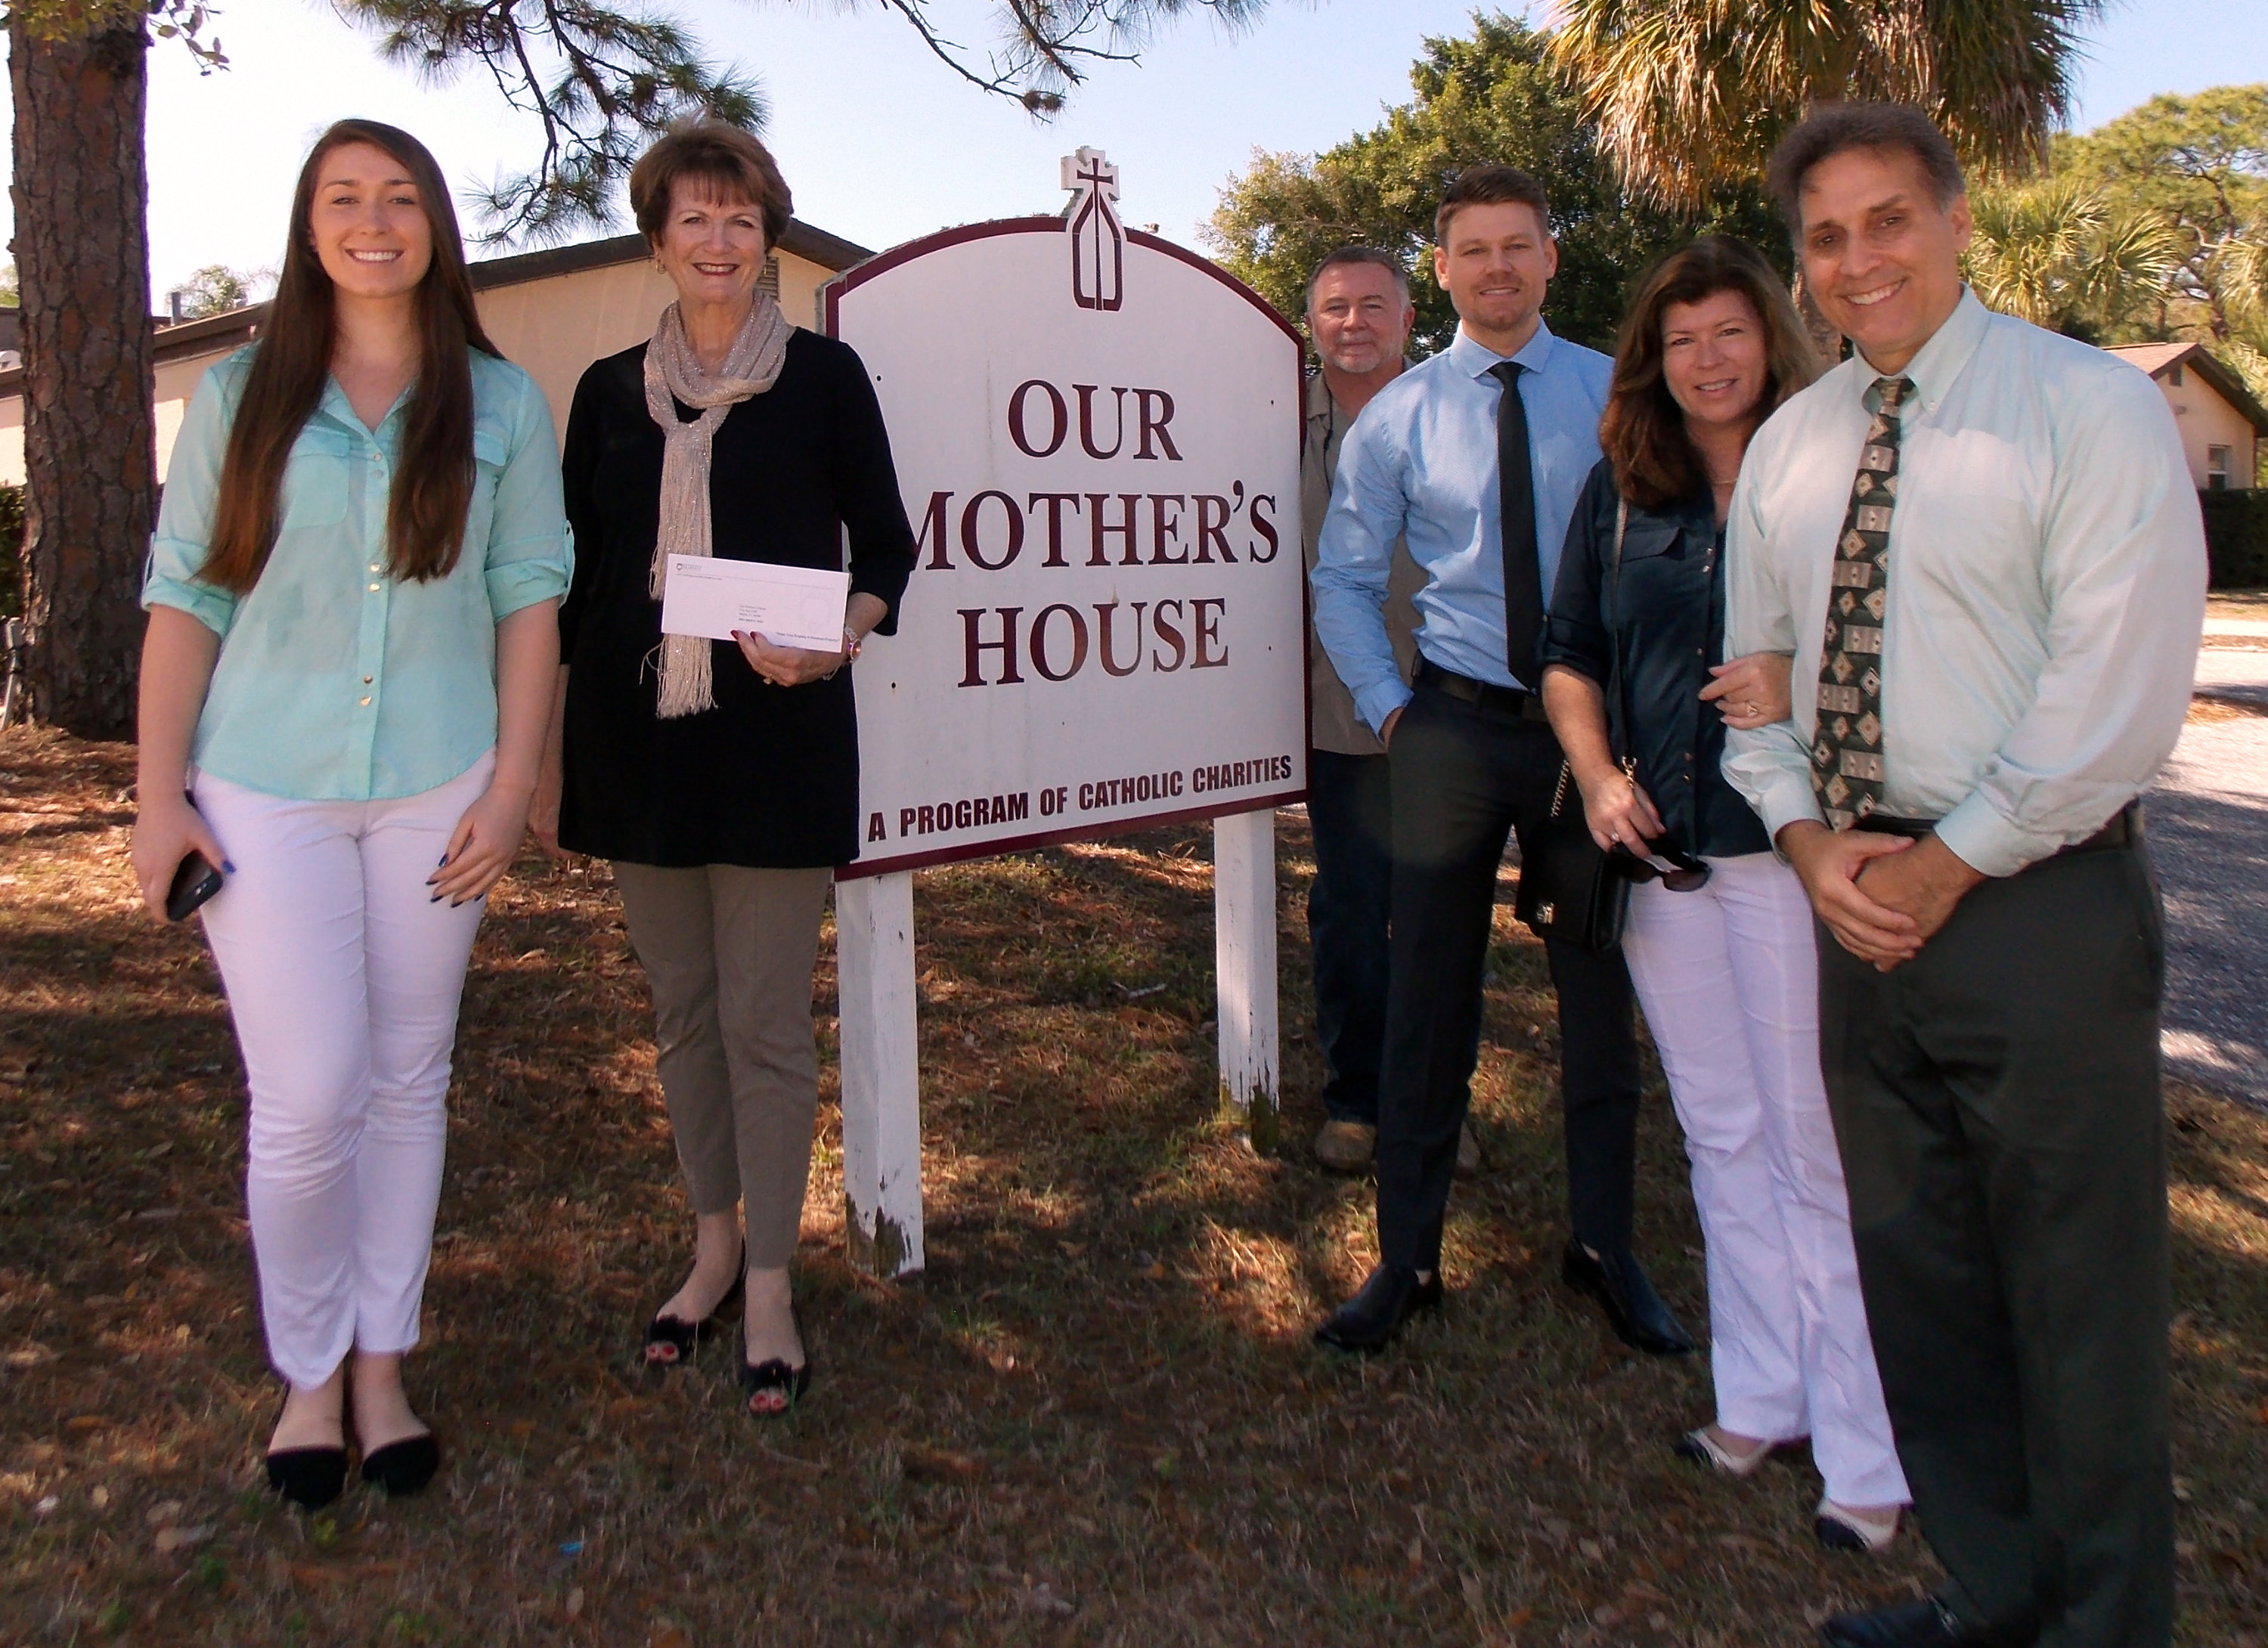 Generous Property Real Estate Surpasses $100,000 in Contributions